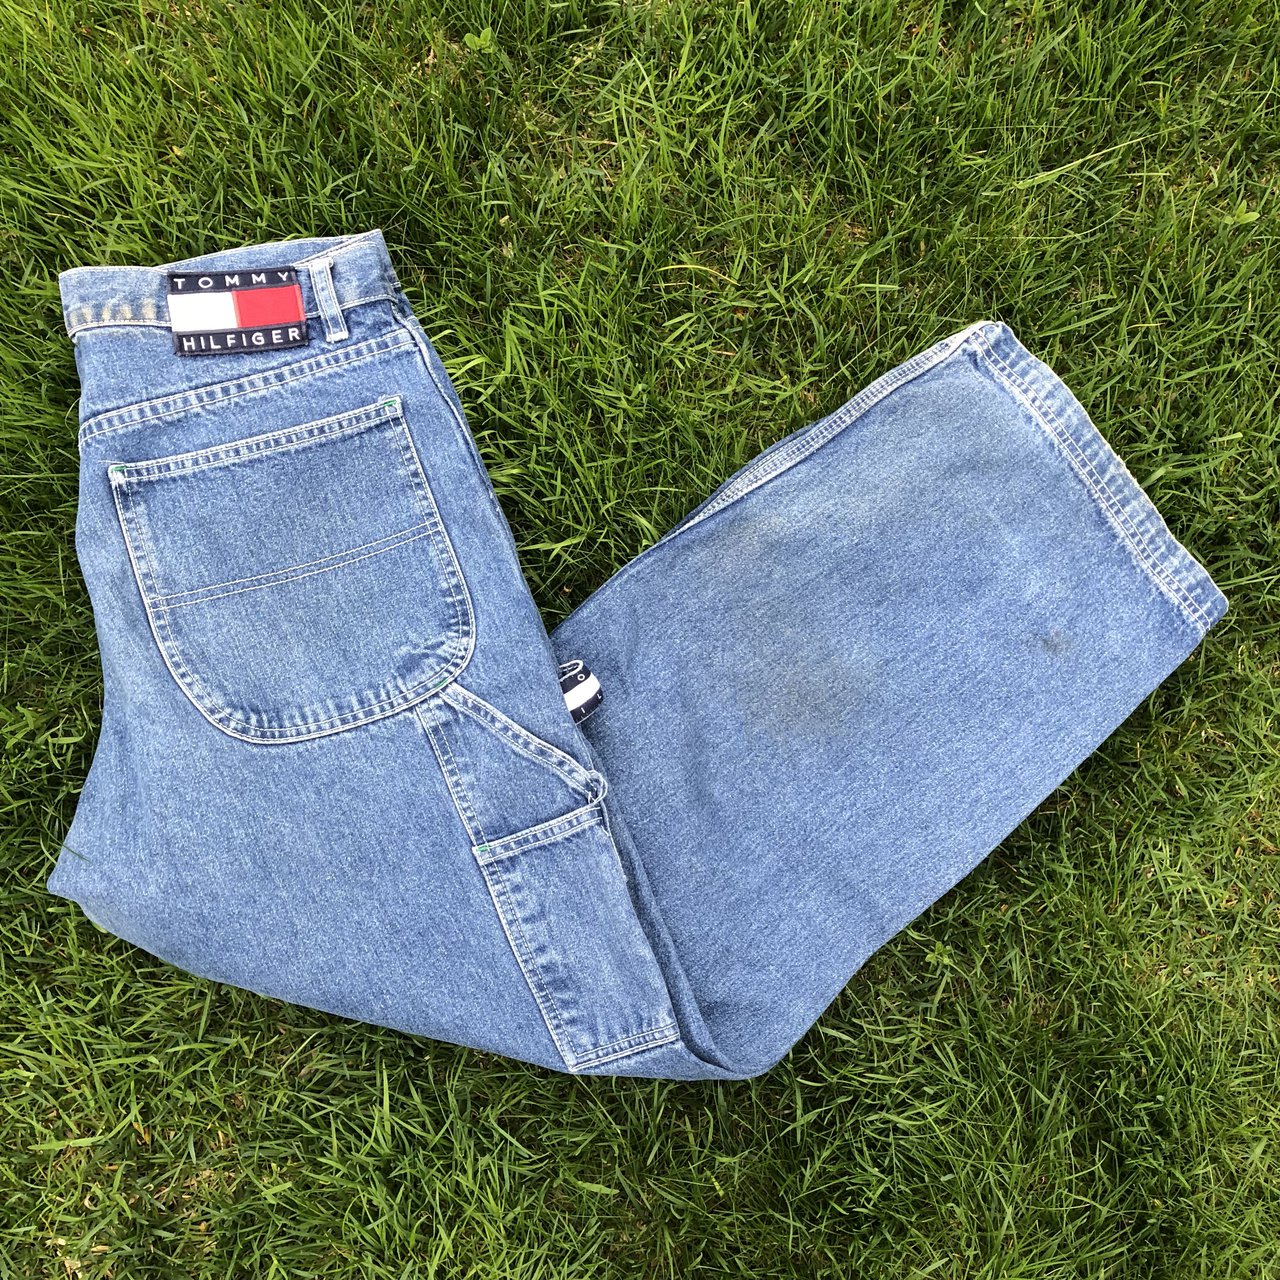 037e15d4e Incredible 90 s Tommy Hilfiger carpenter jeans. Good There + - Depop